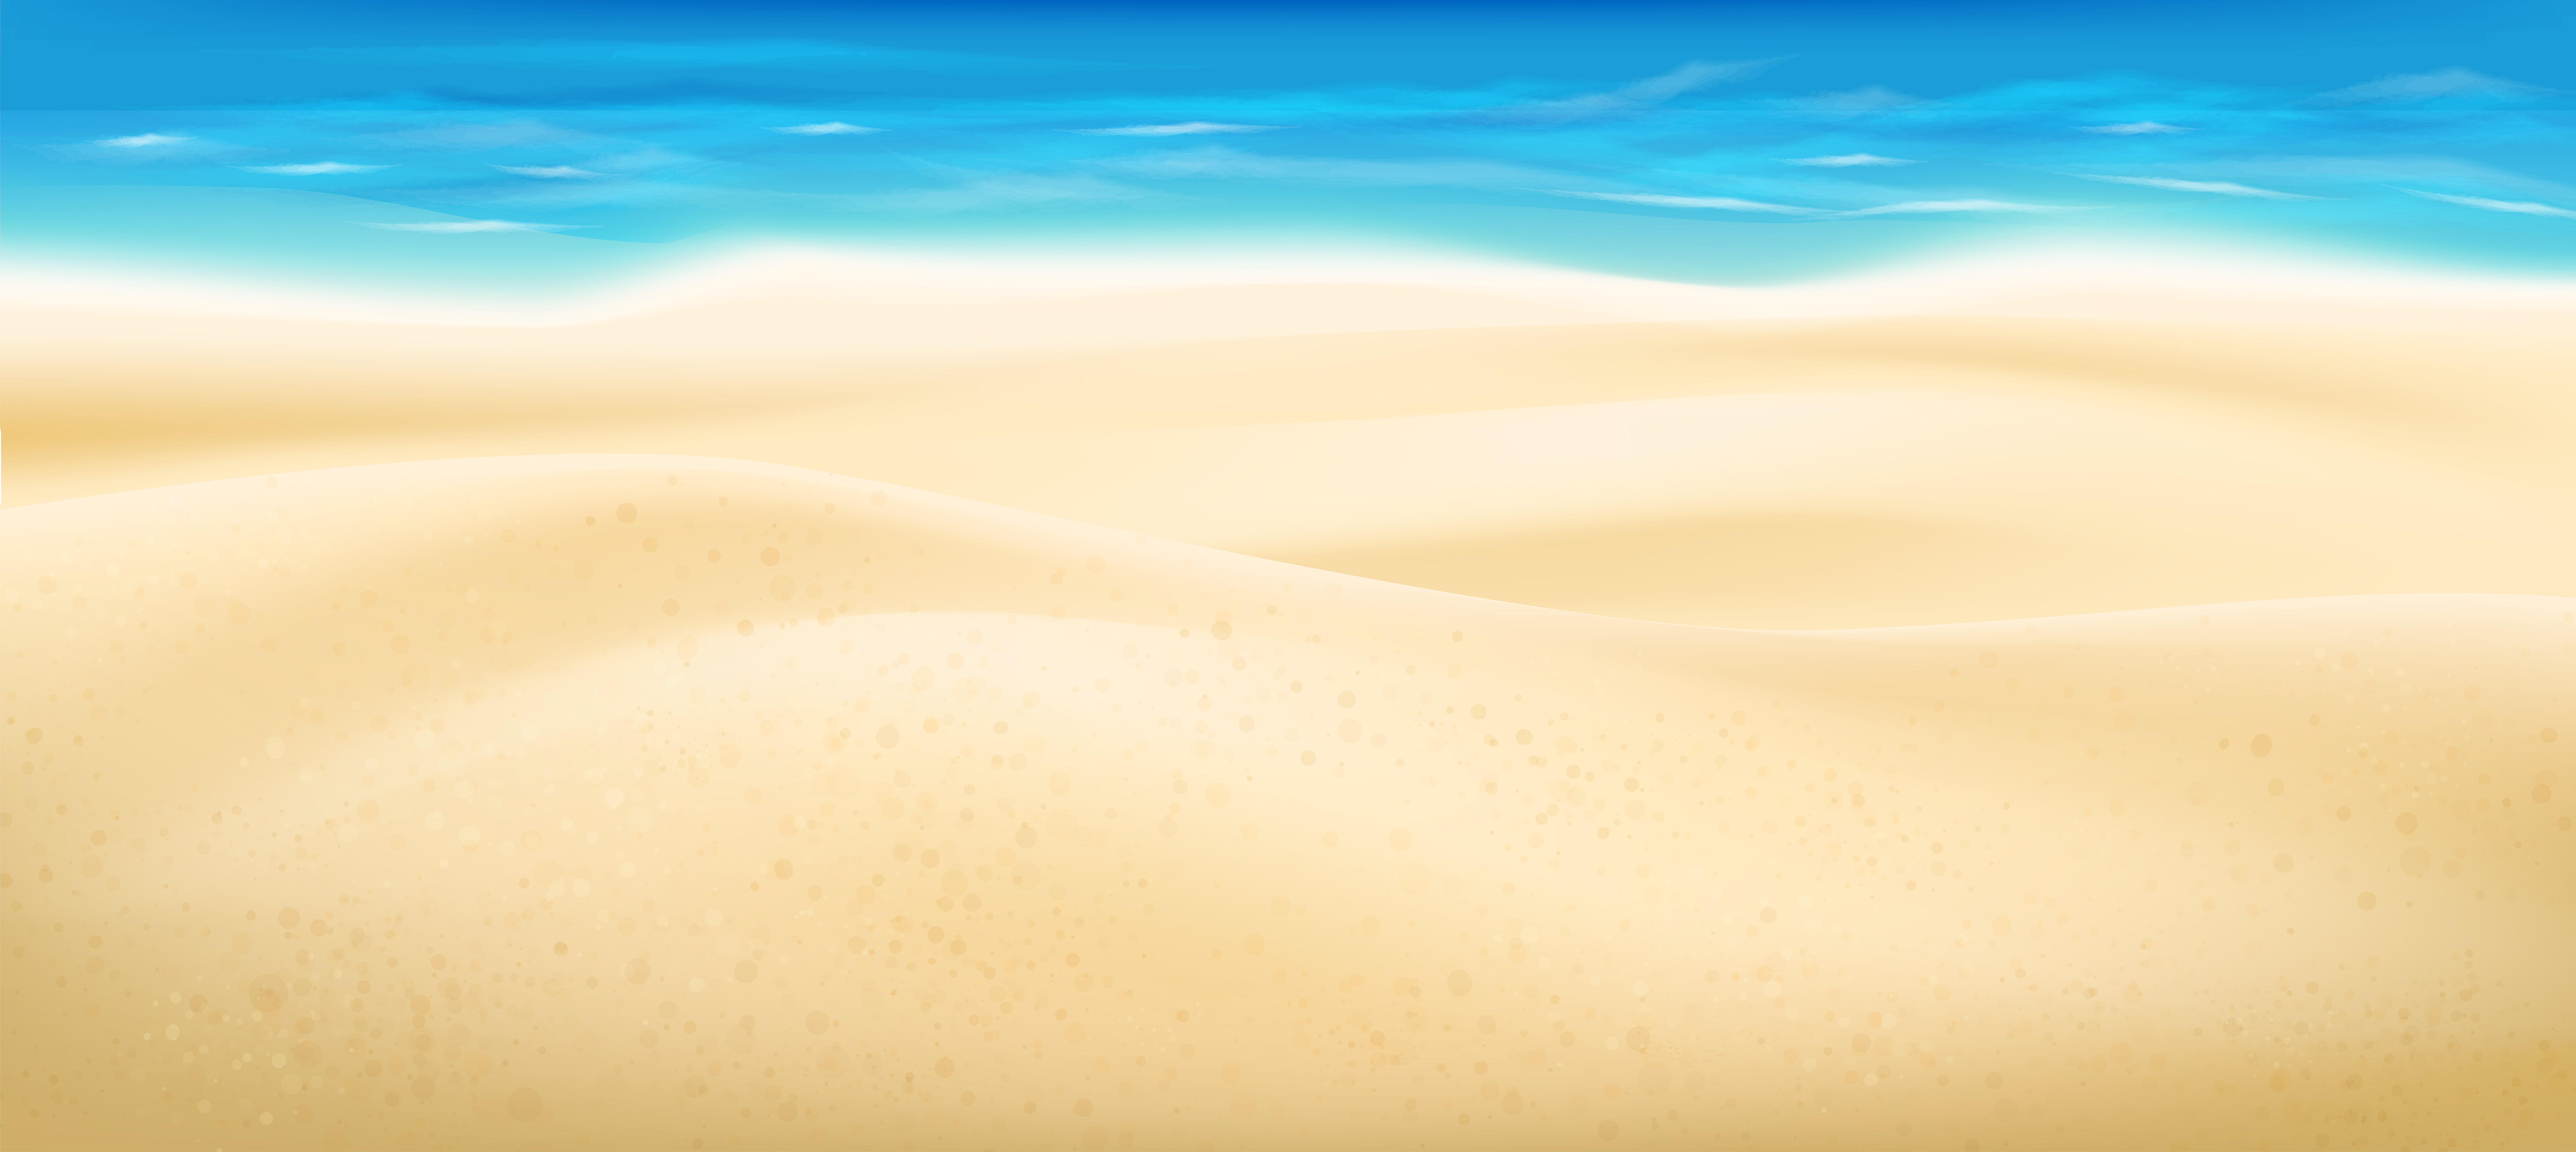 Sea and Sand PNG Clip Art Image.